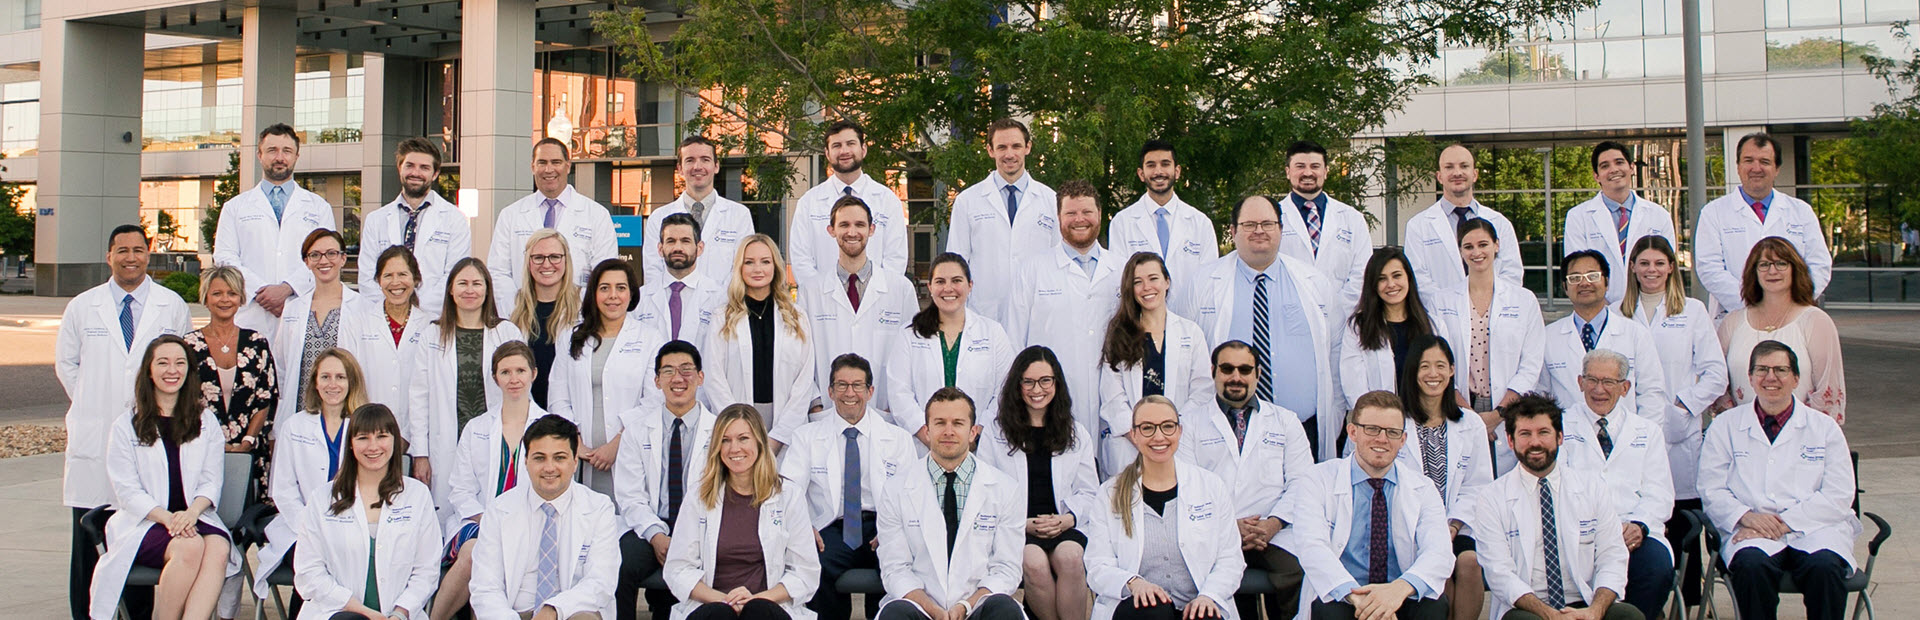 Applicants | Internal Medicine Residency Program | Saint